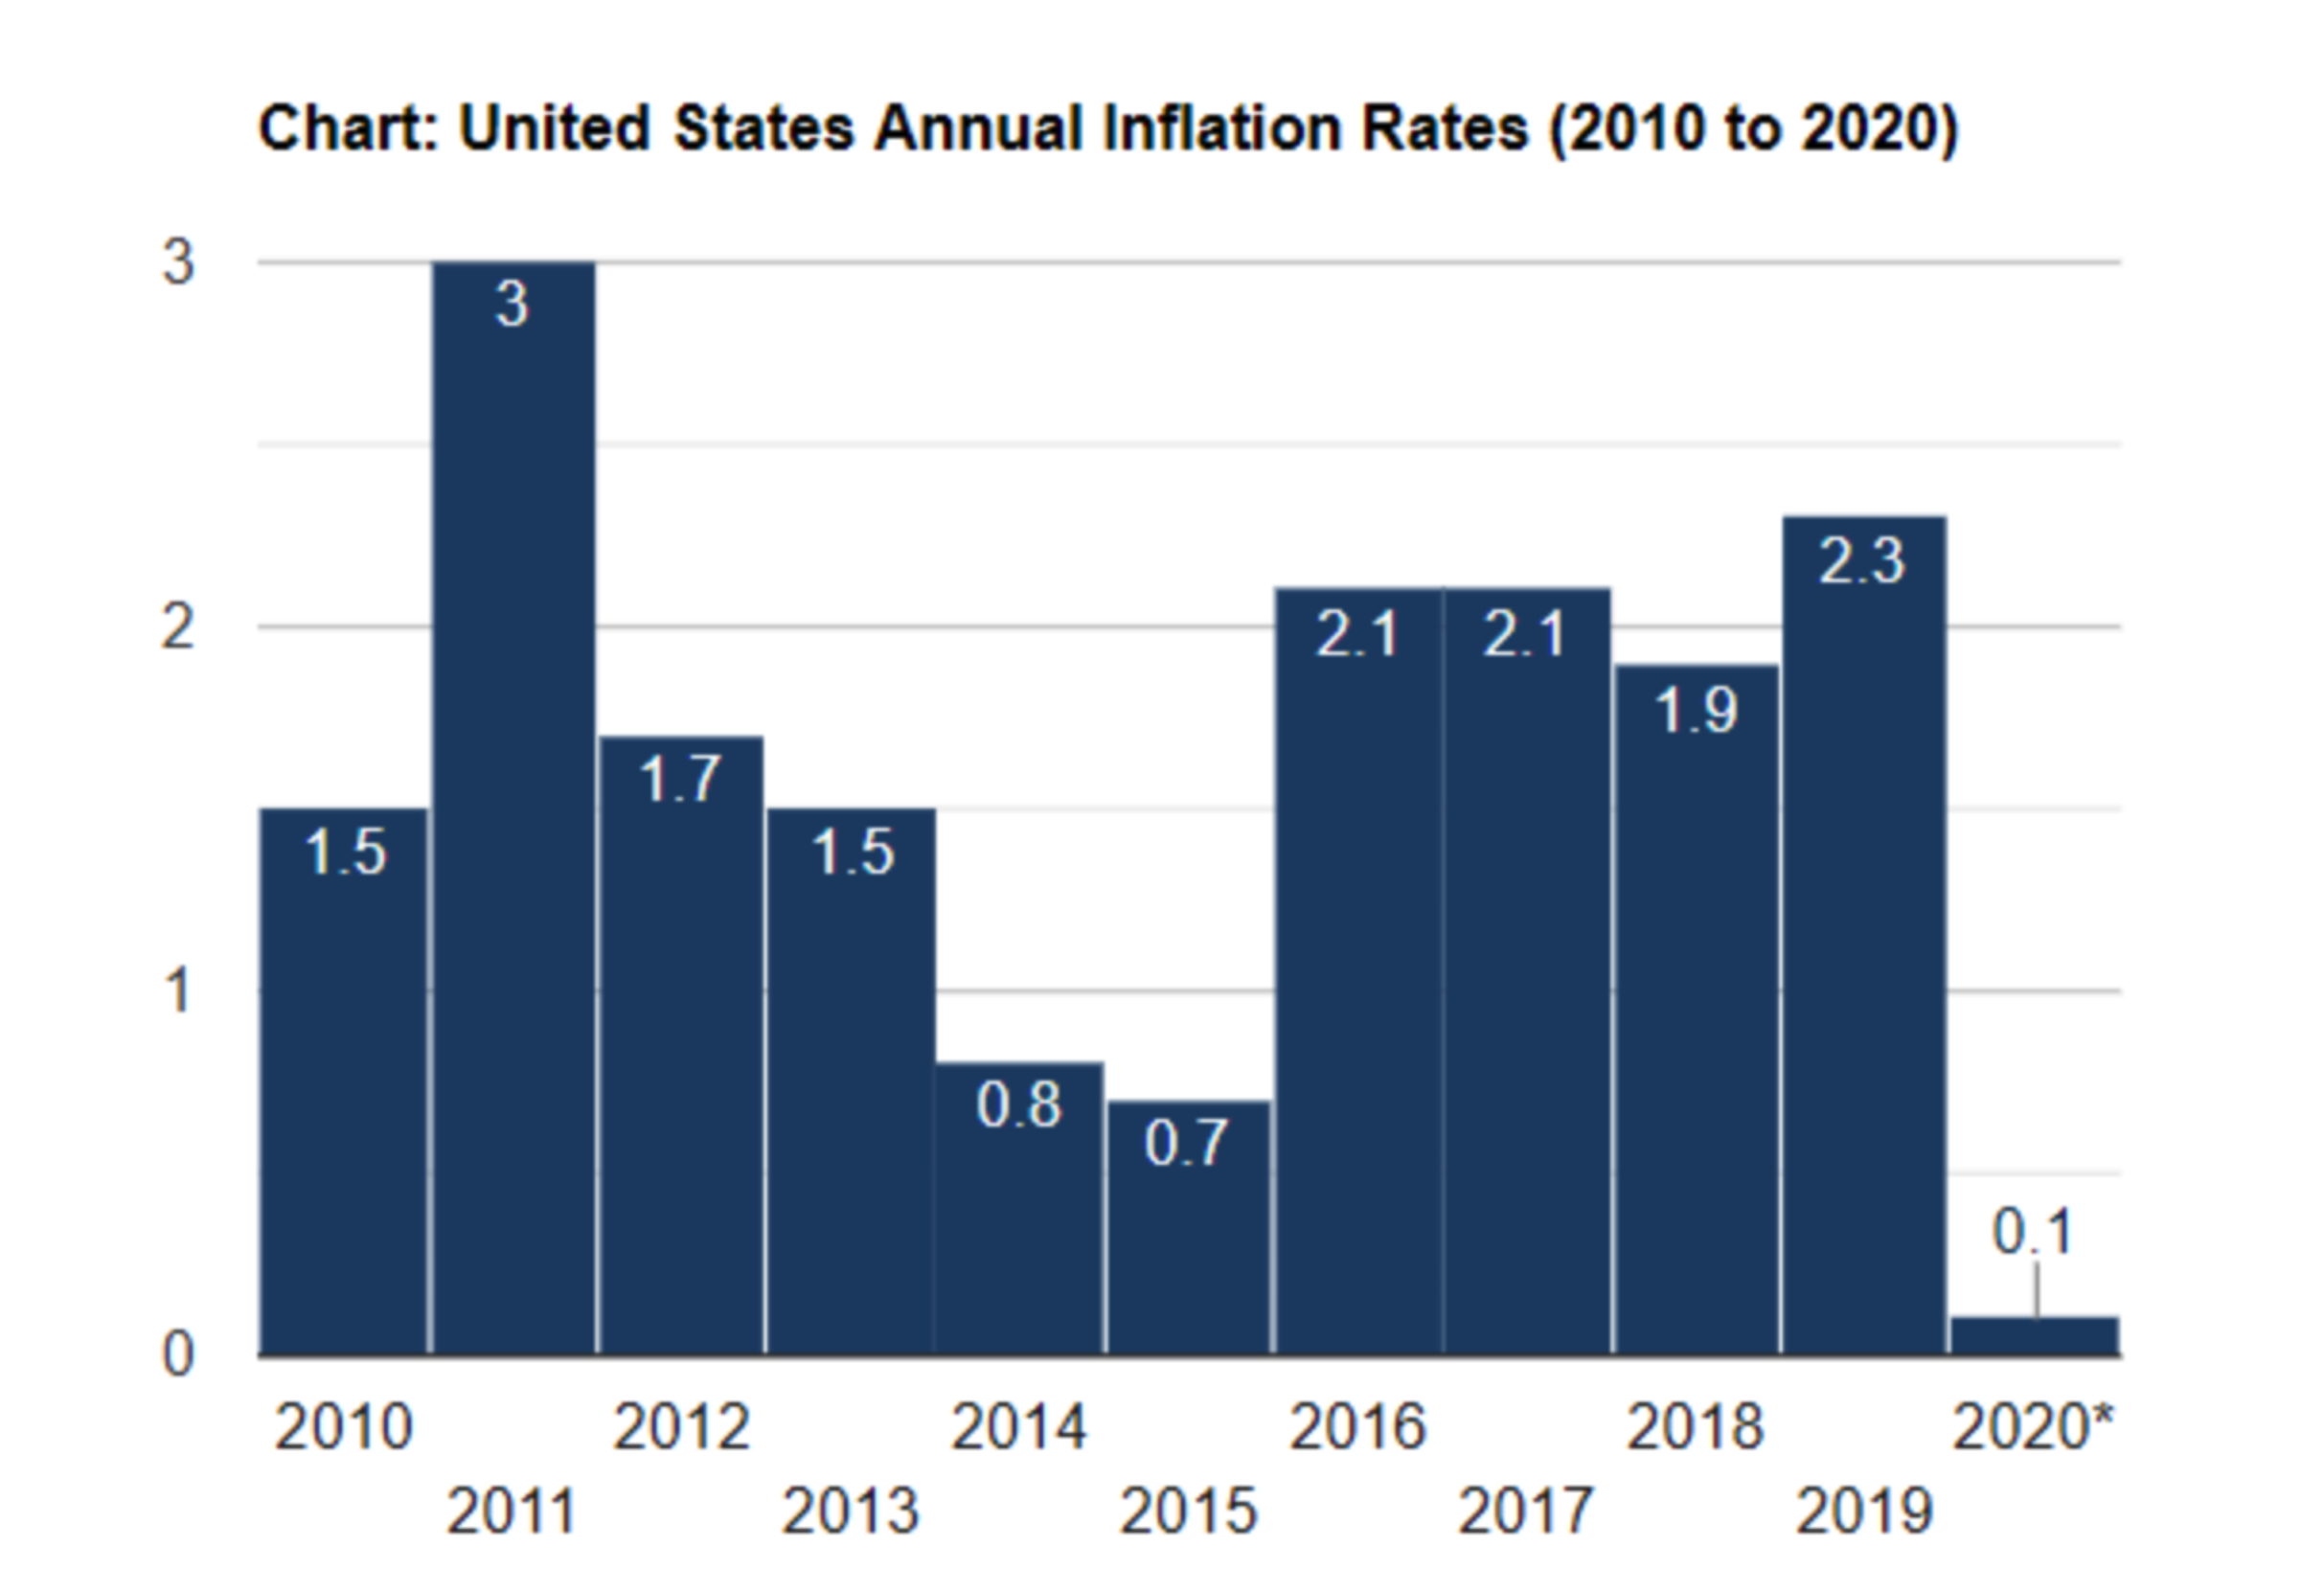 US Annual Inflation Rates